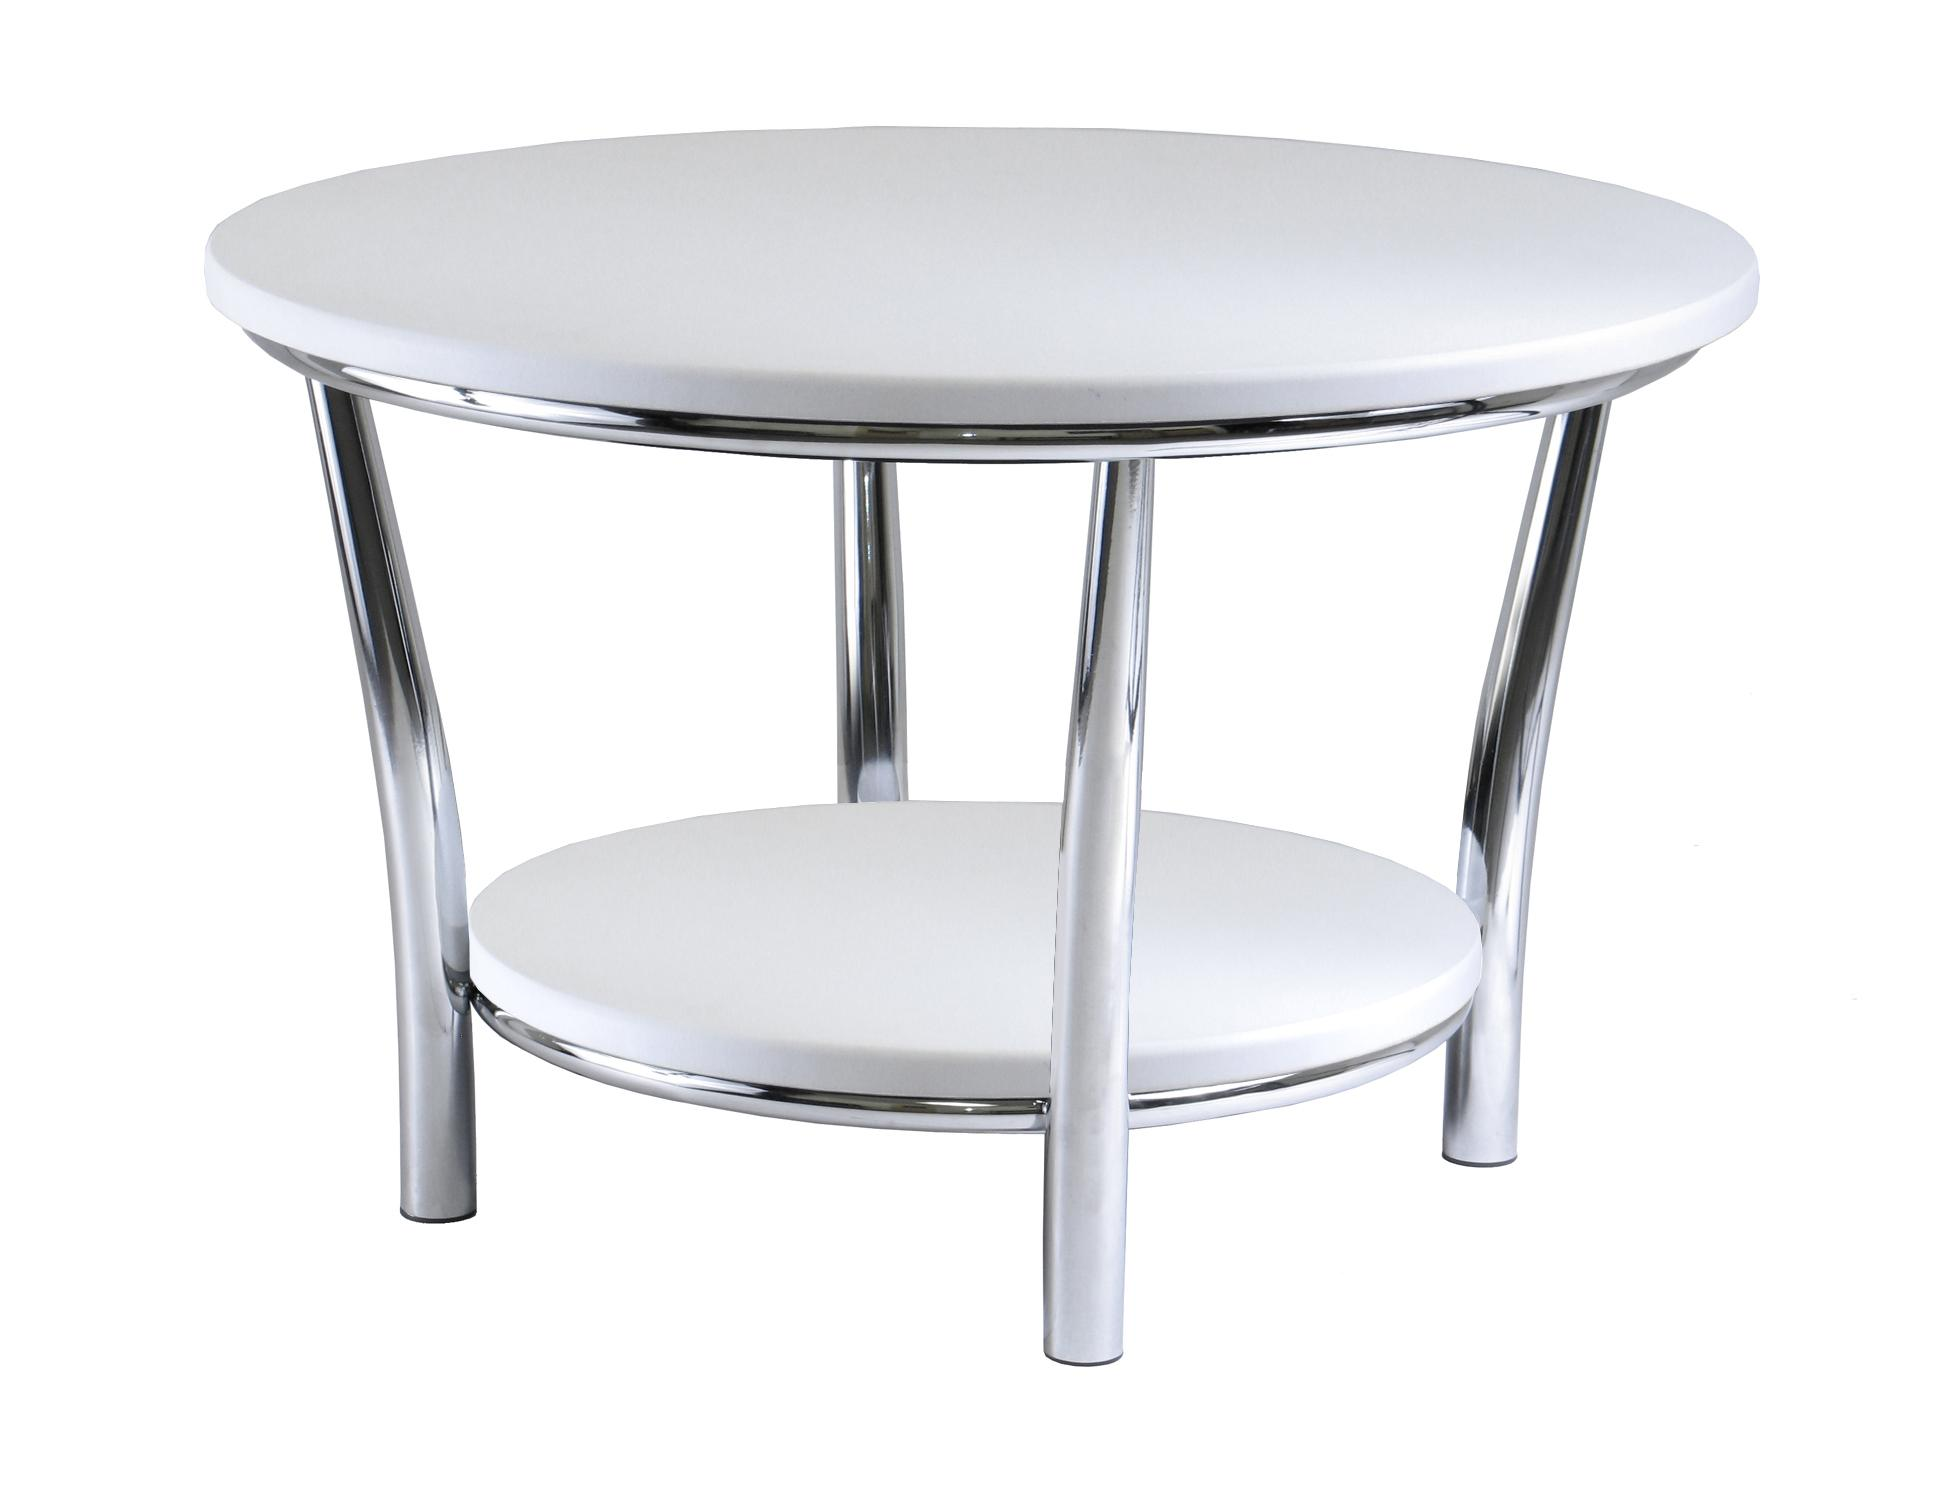 round coffee table design collection for complete furniture admirable inspiration come with contemporary style and white top plus four iron legs chrome also storage shelf end